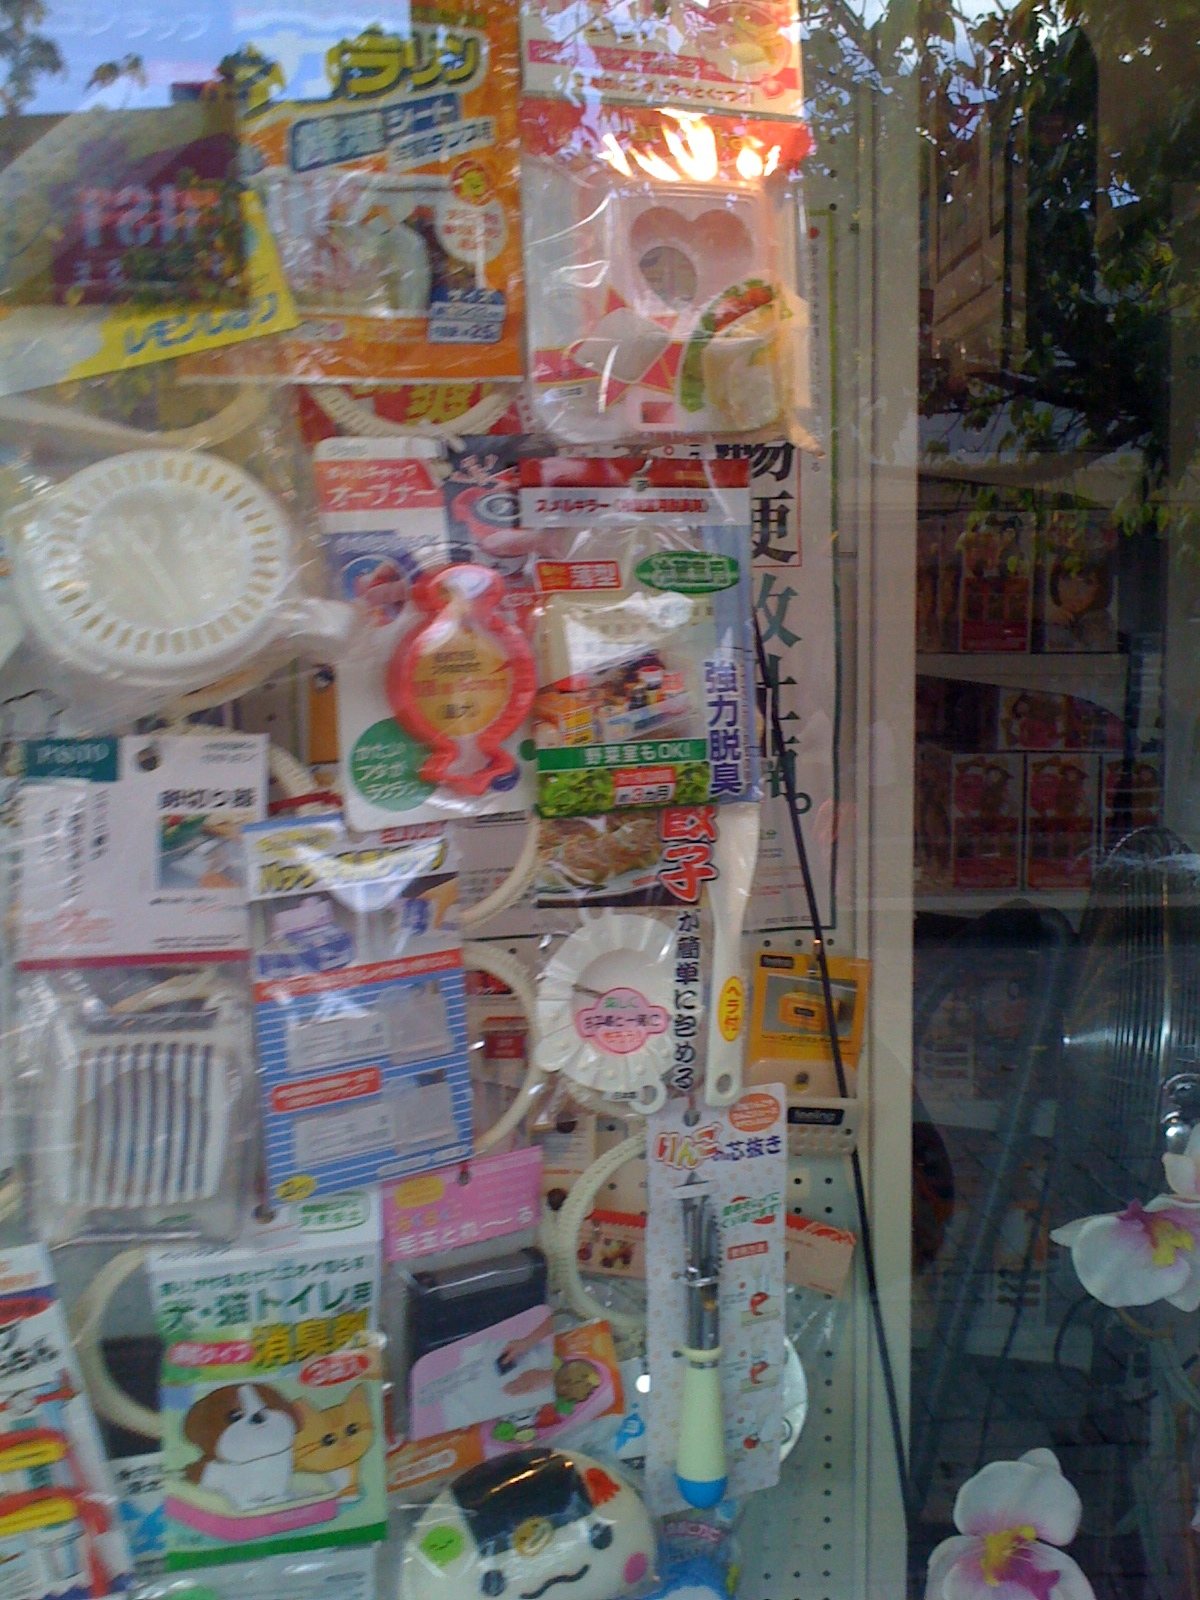 Japanese bric a brac, such as you might find a 100 Yen store in Tokyo.